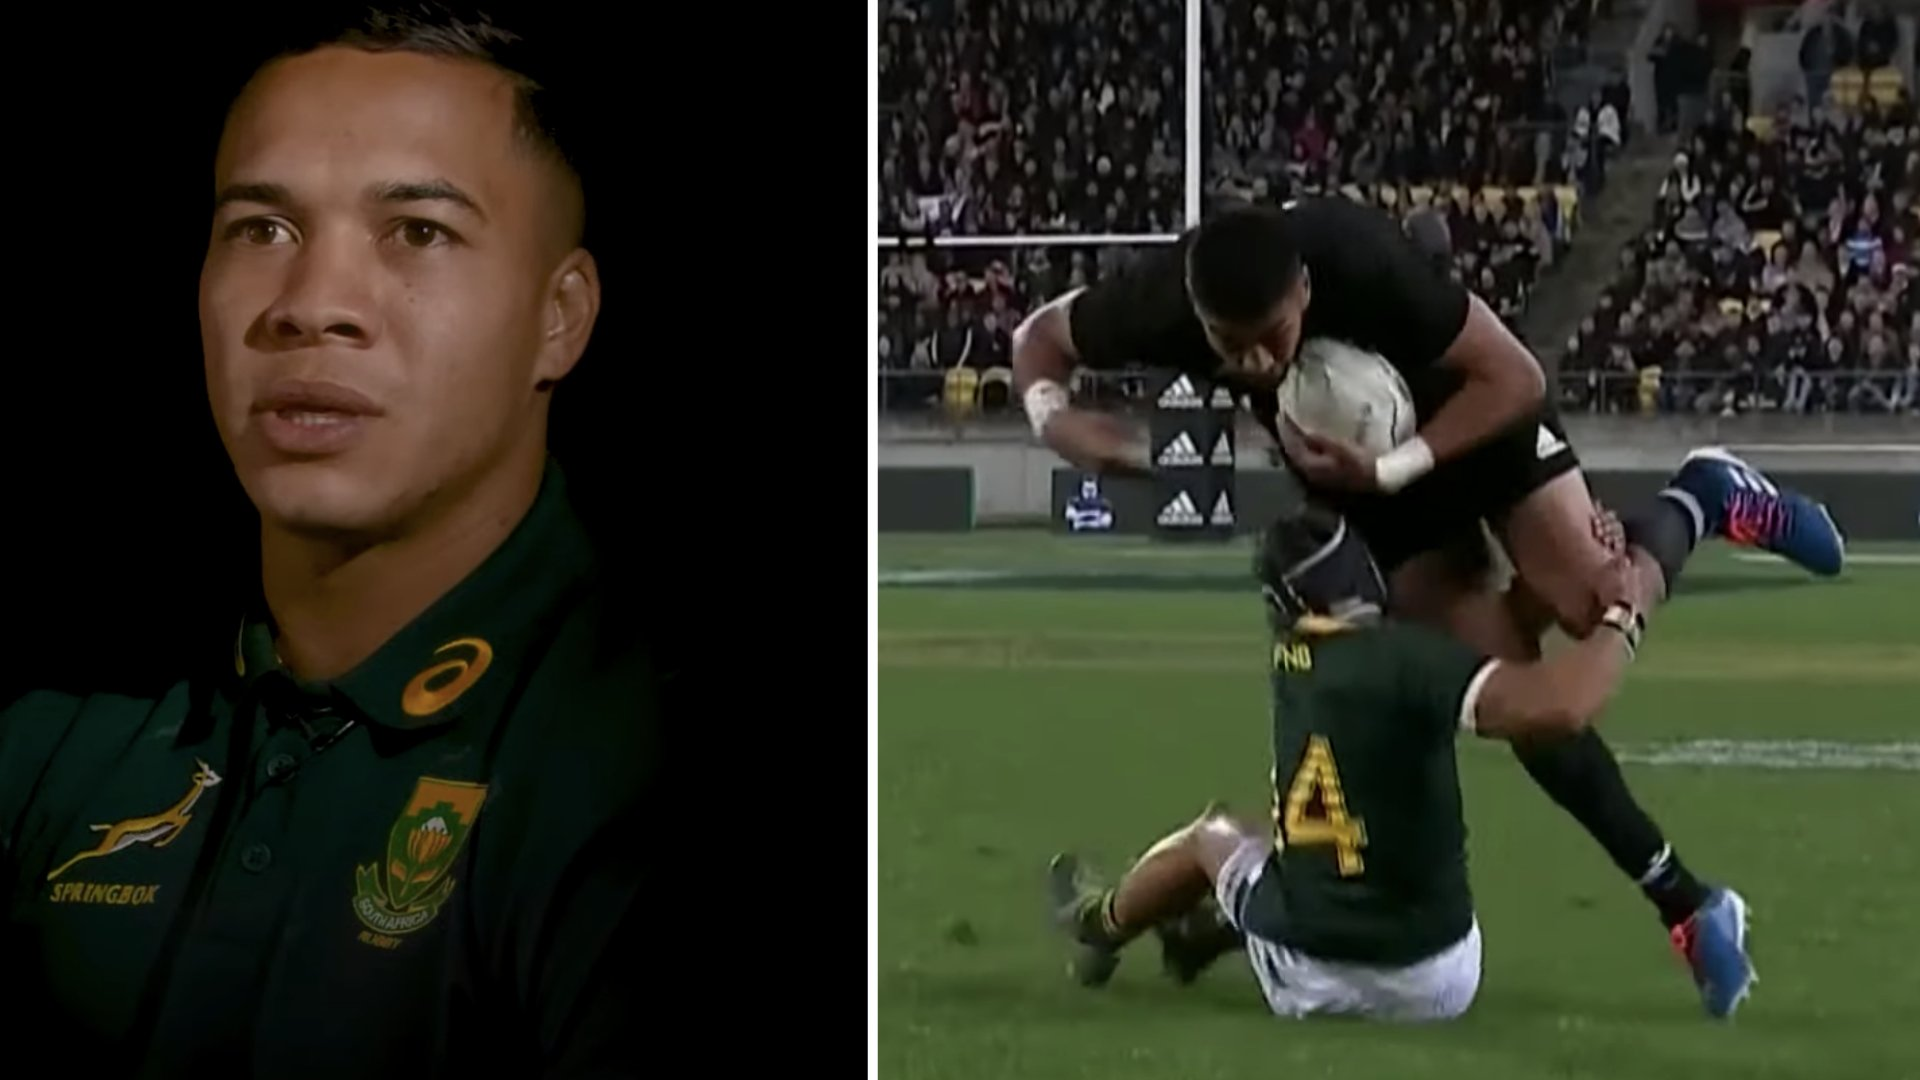 Every small person playing rugby should watch this